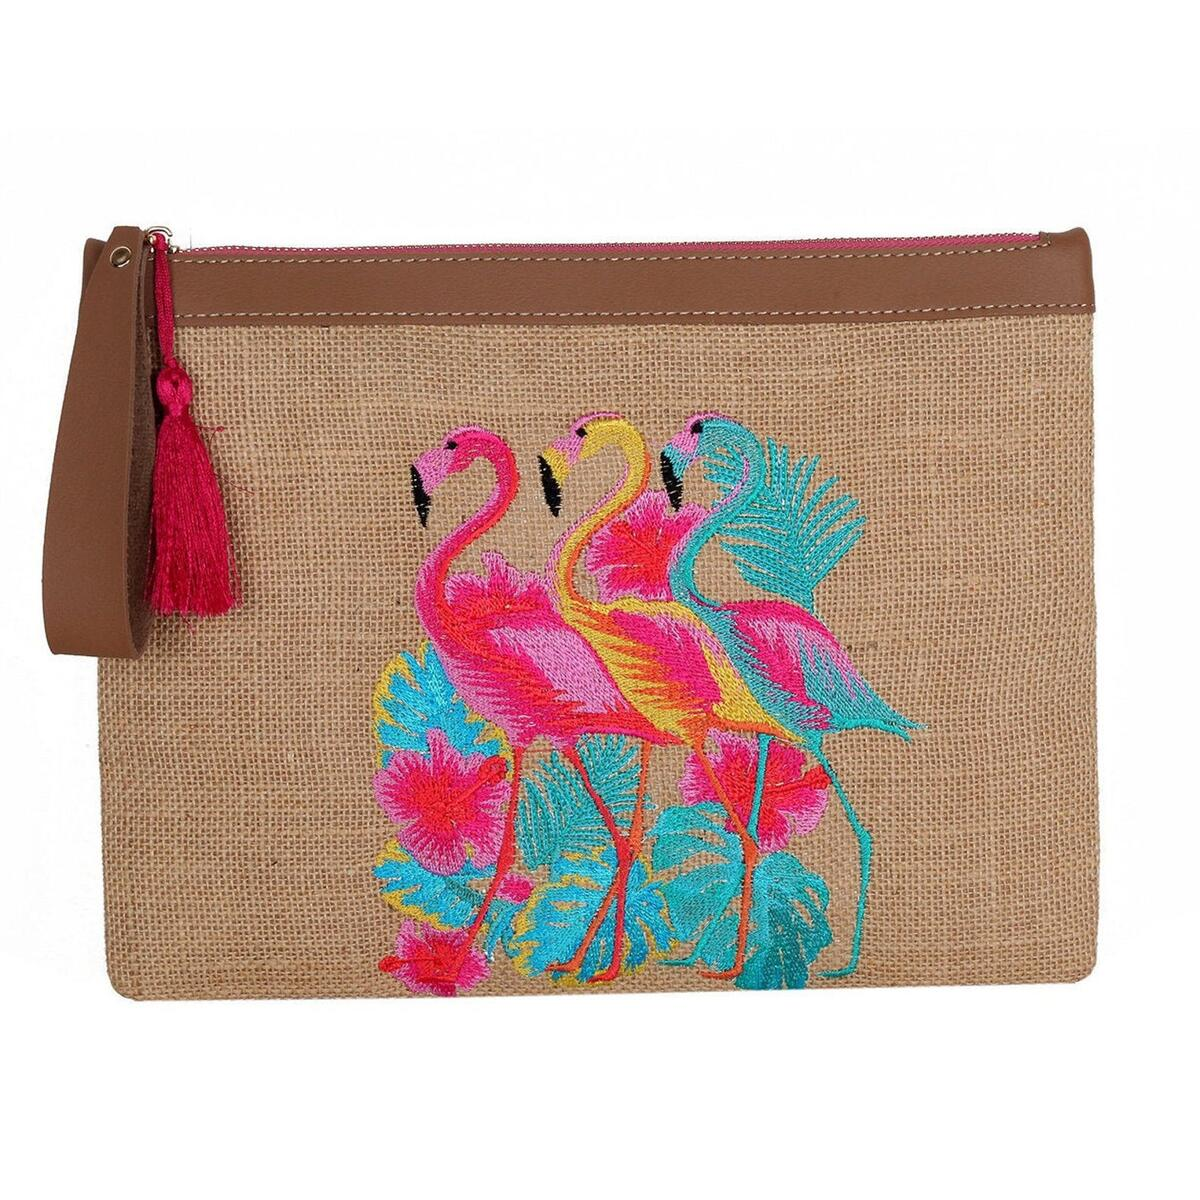 Flamingo Family Embroidery Jute Clutch, Leather Holder with Tassel, Elephants, Bamboo Green, Bamboo Fushia-Pink design, Handbags for Women